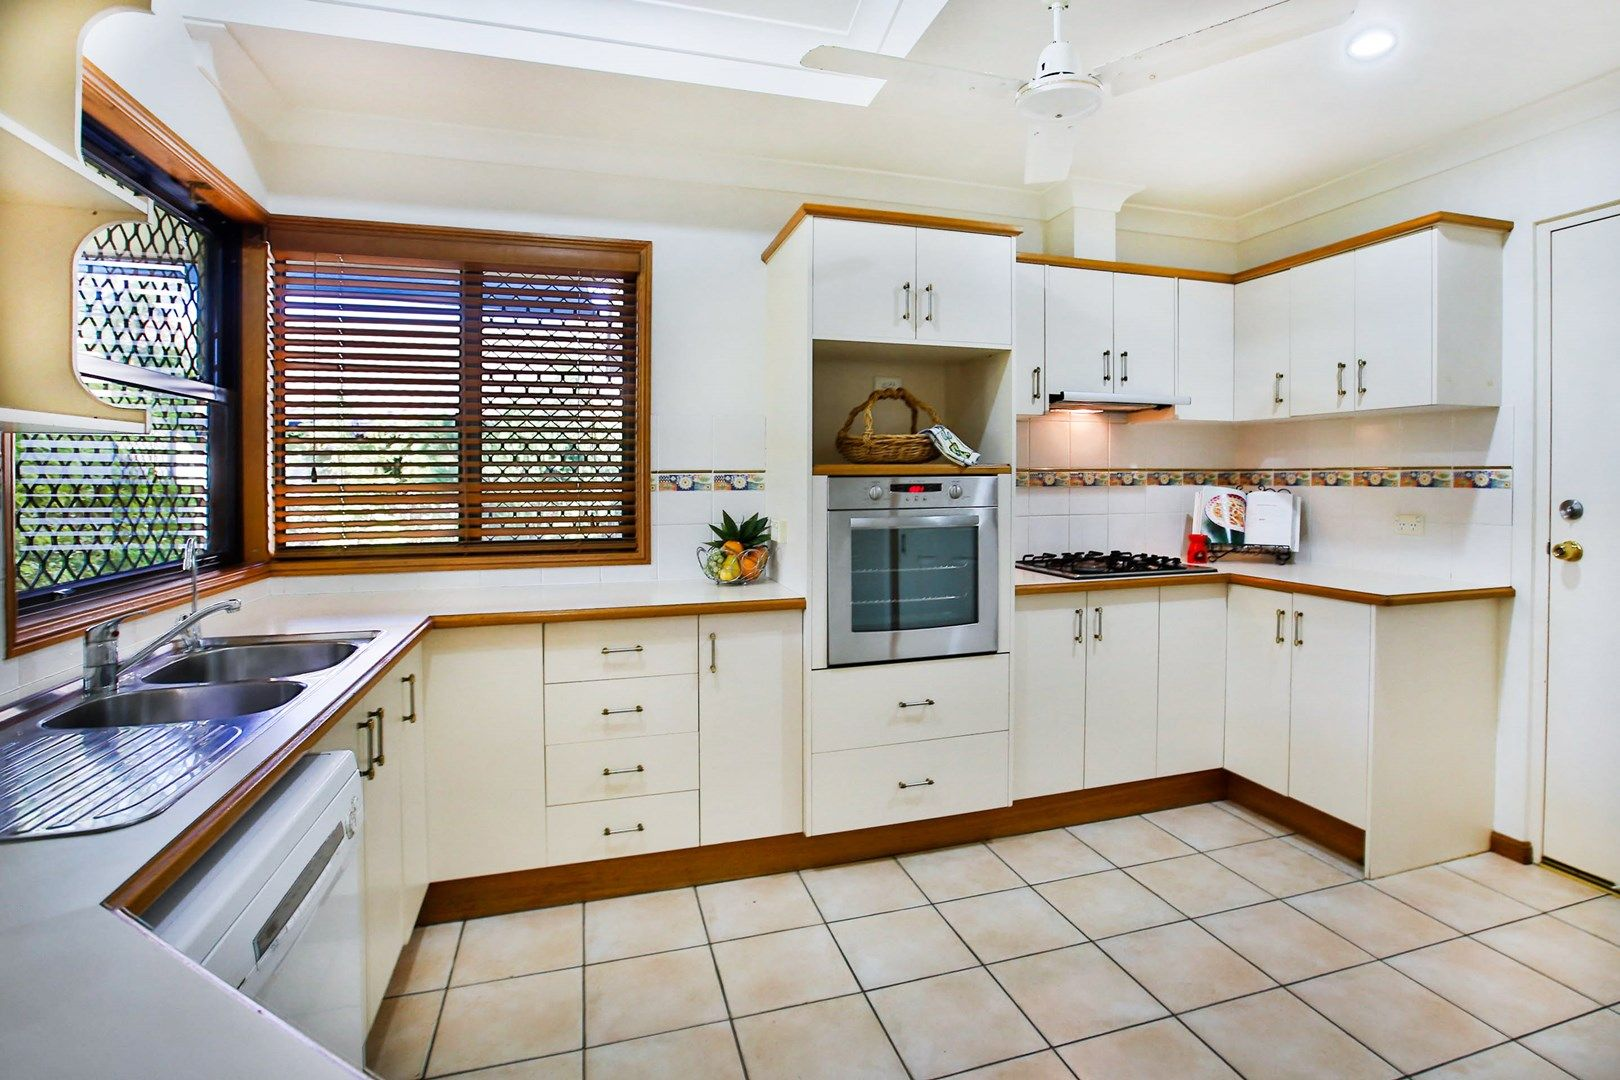 25 Southern Cross Circuit, Douglas QLD 4814 - House For Sale | Domain